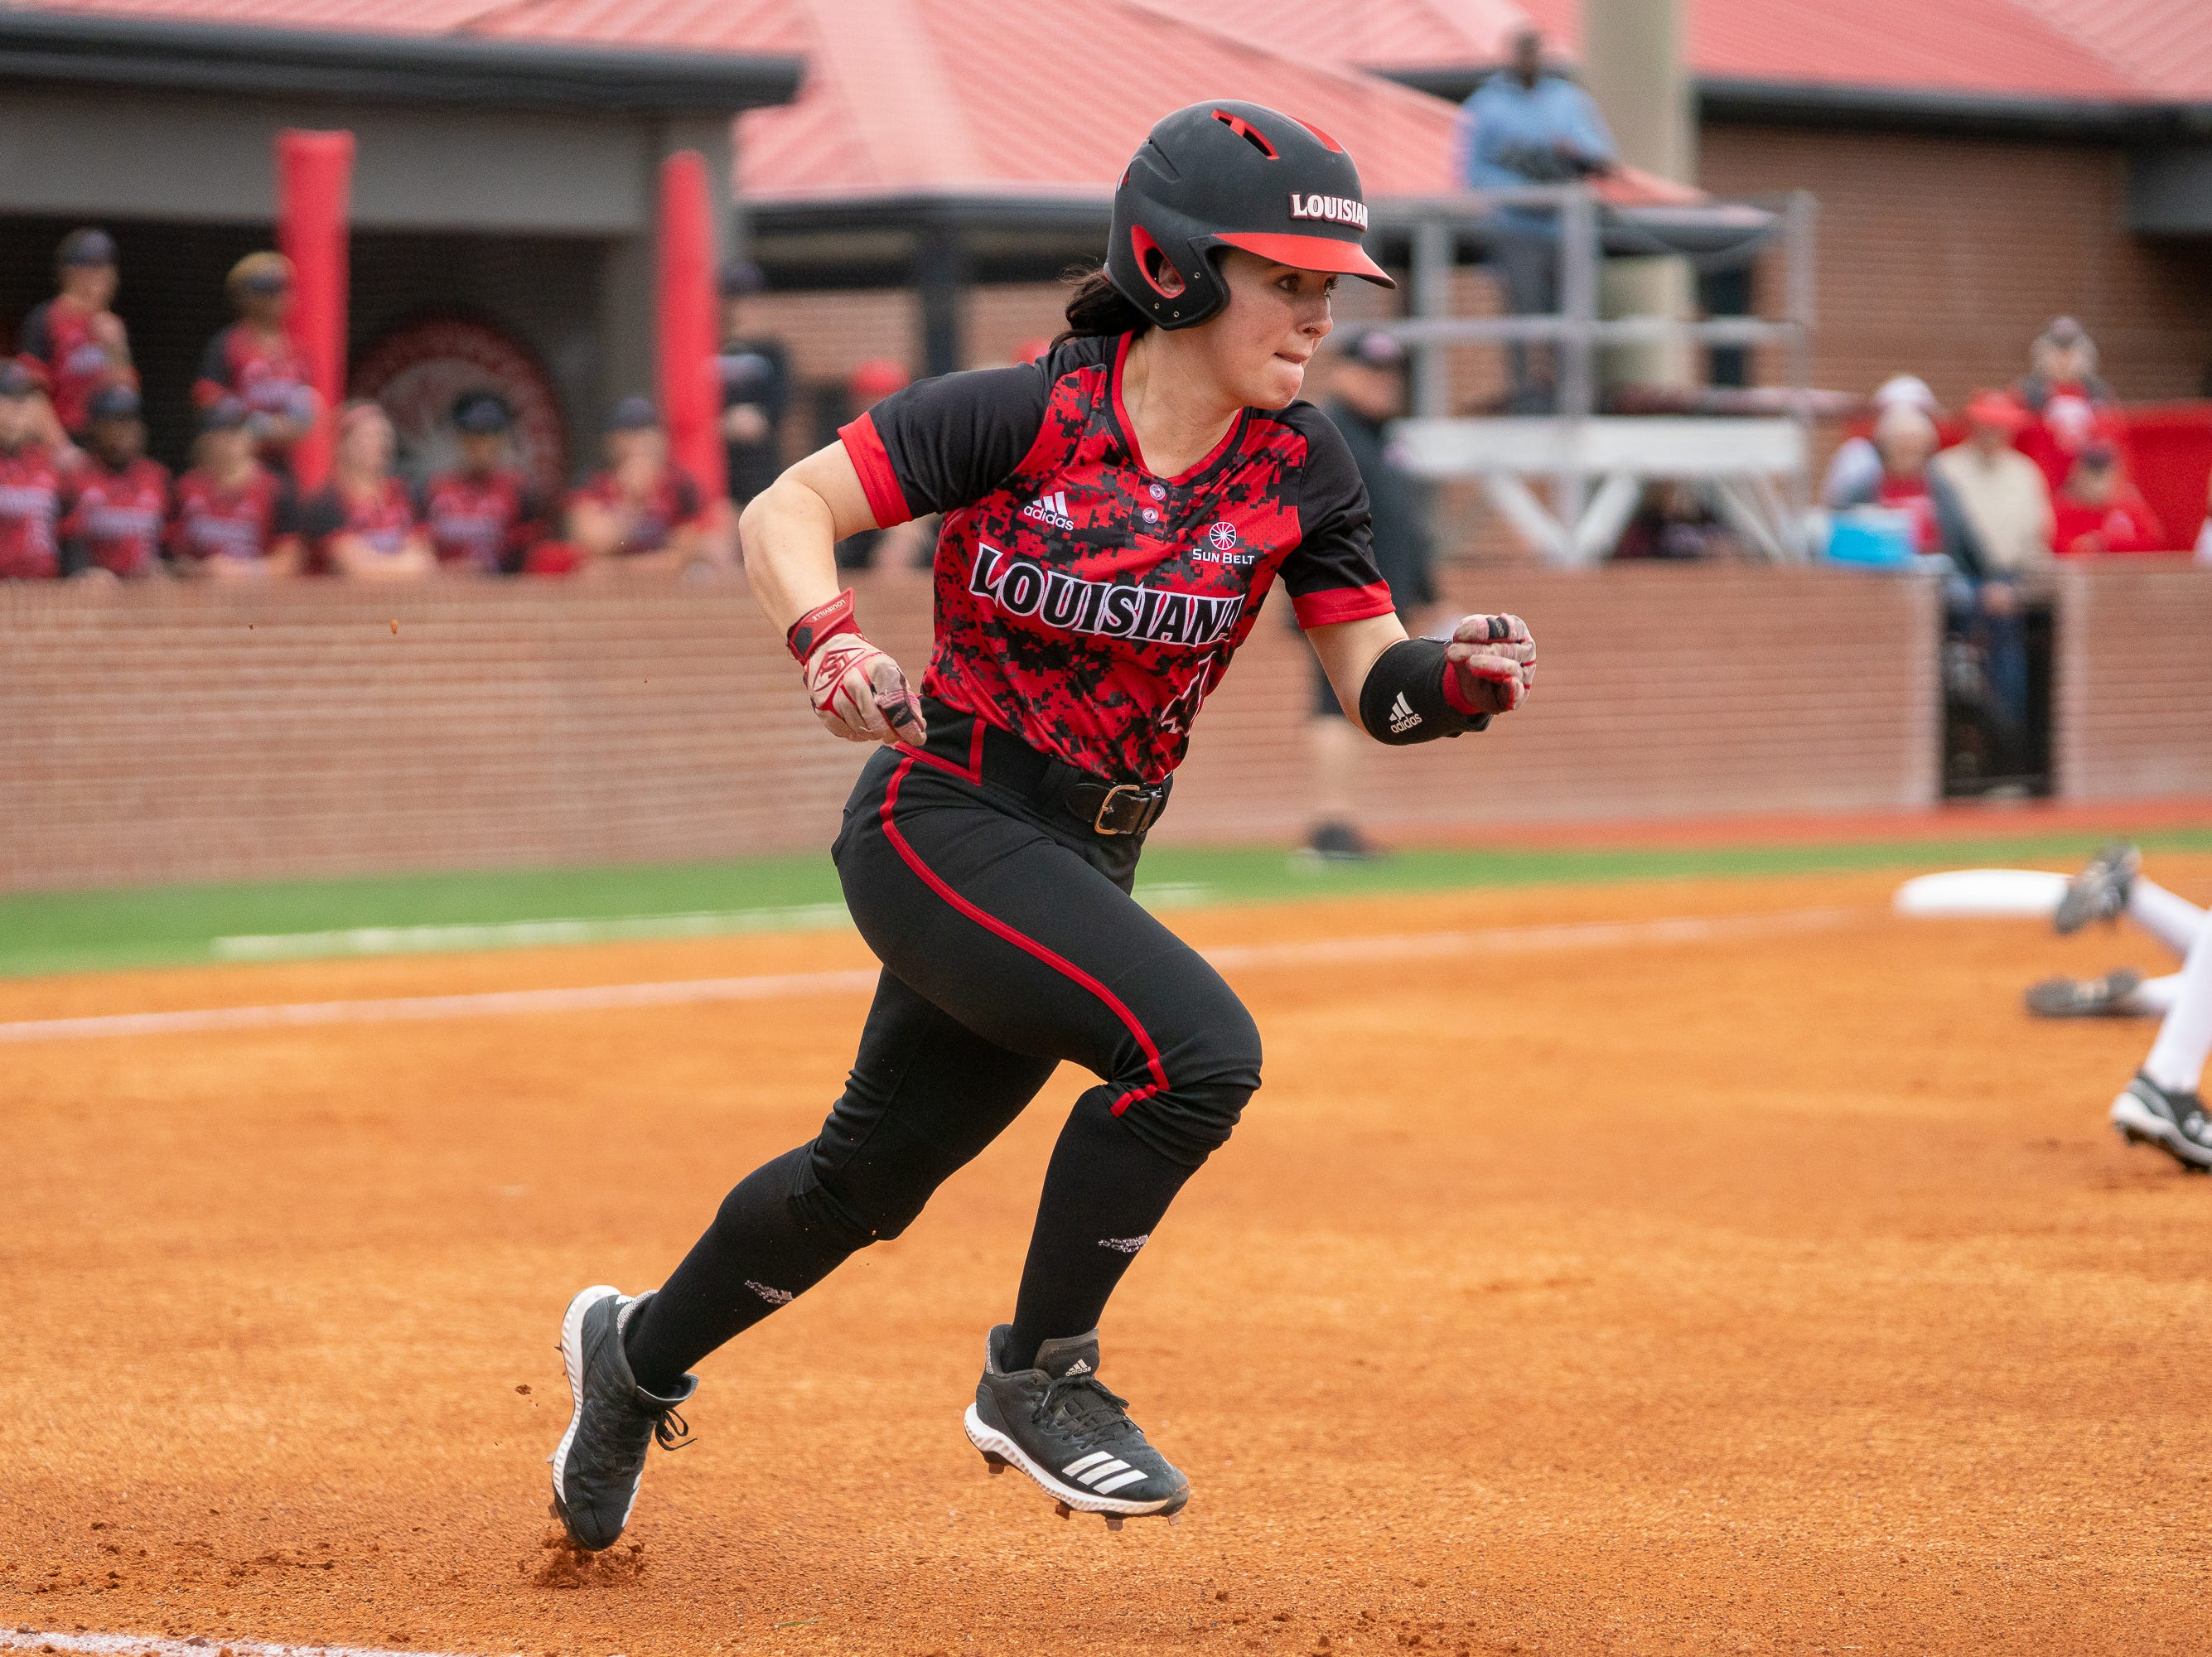 UL's Keeli Milligan sprints to first base as the Ragin' Cajuns take on Stephen F. Austin at Lamson Park on Saturday, Feb. 16, 2019.